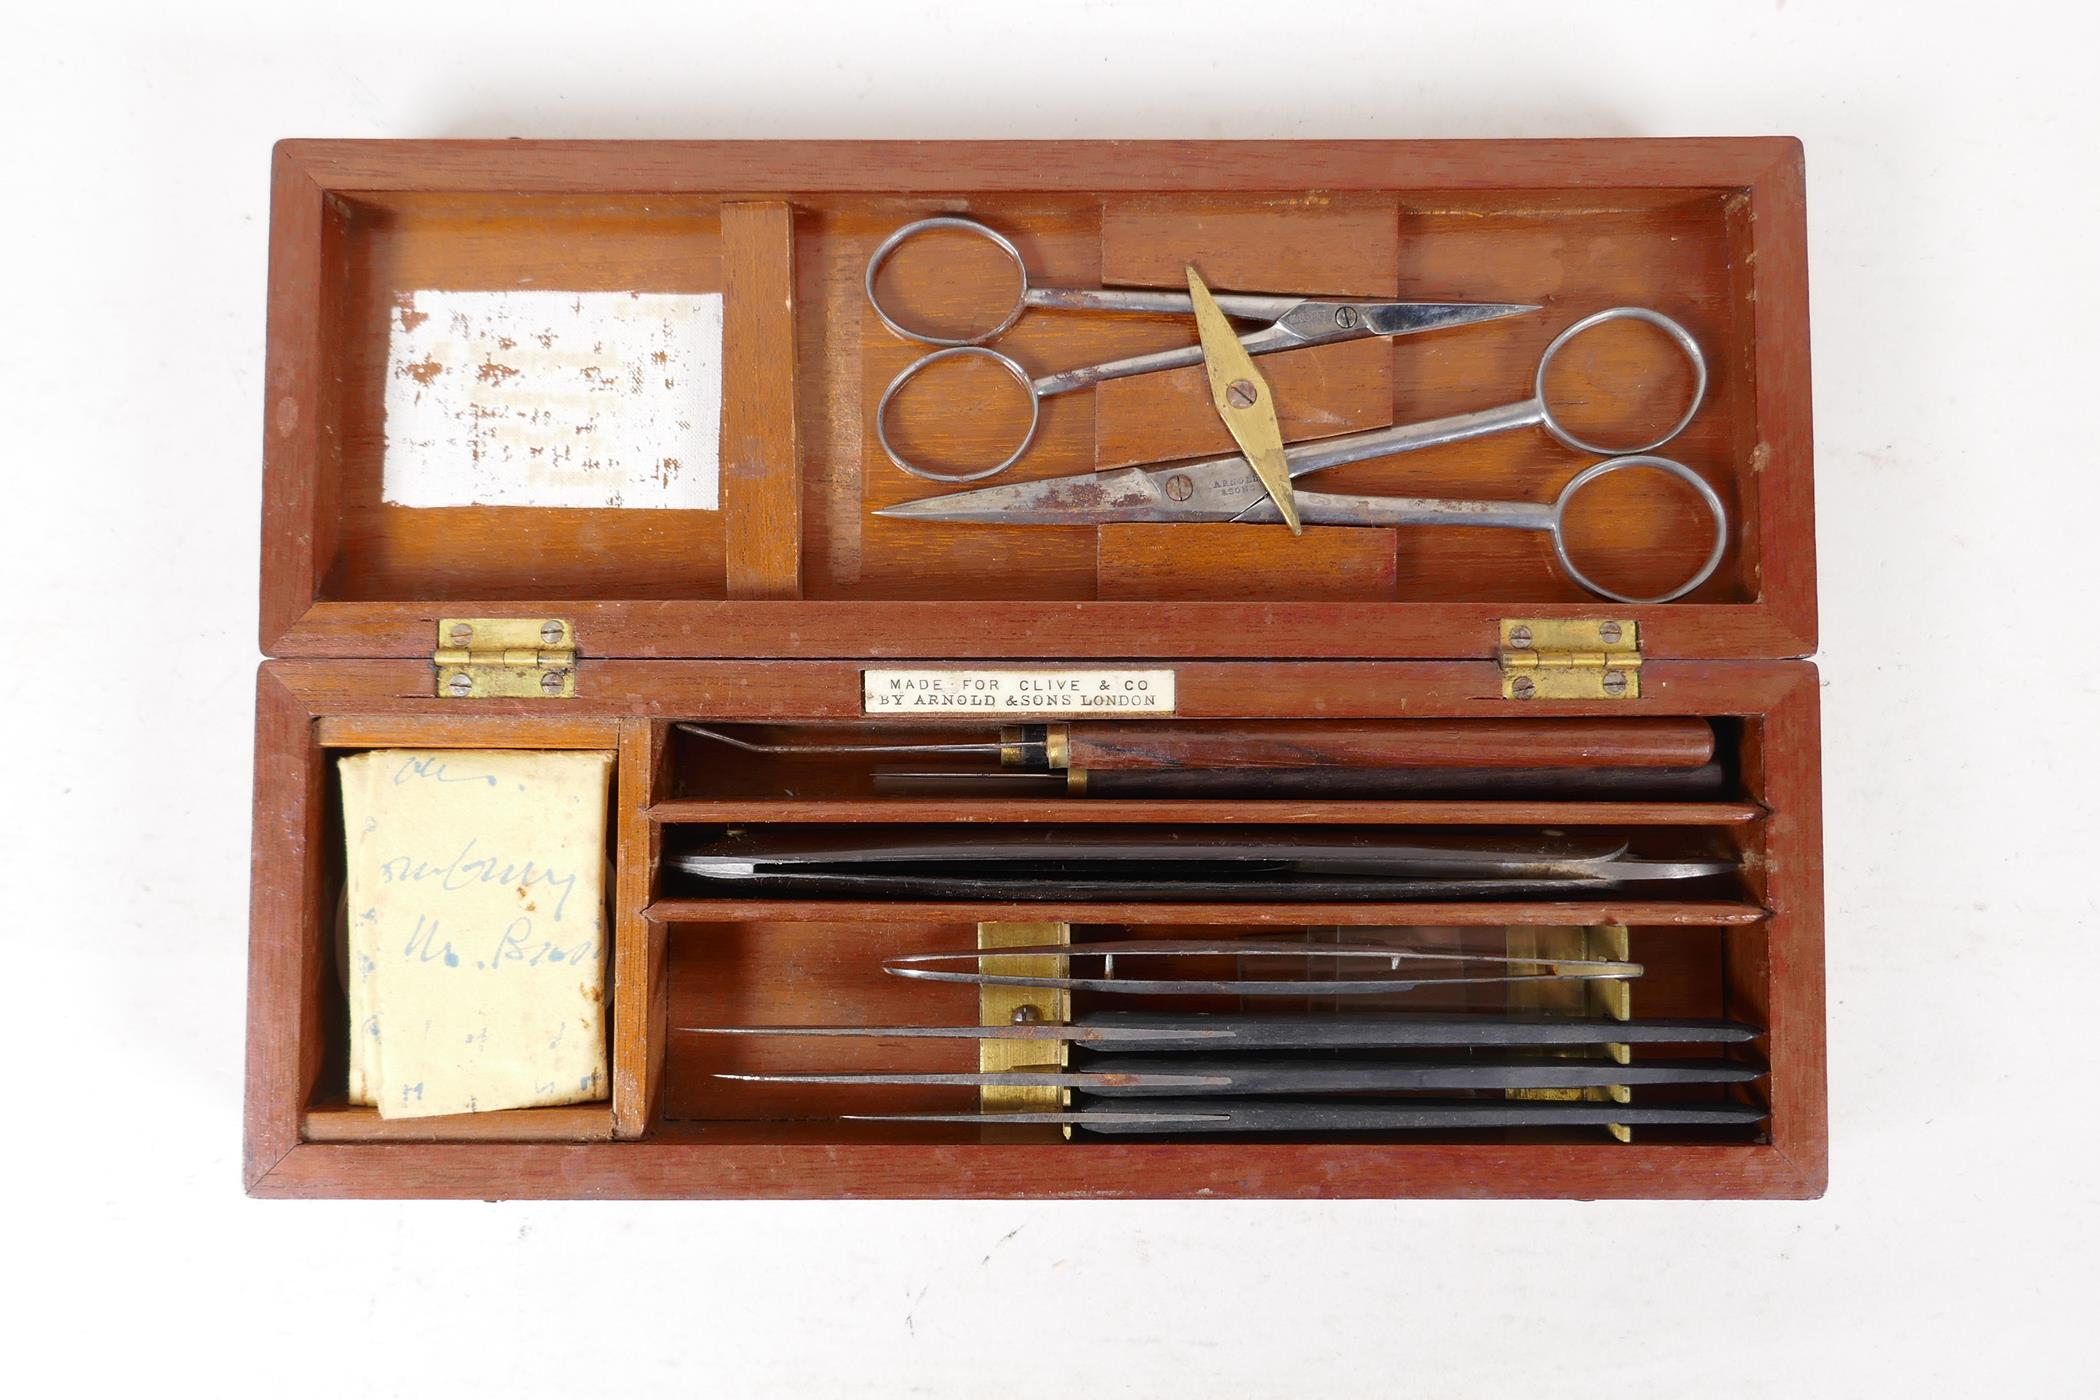 A field surgeons kit by Arnold & Sons, London, for Clive & Co, containing scalpels, a cut throat,